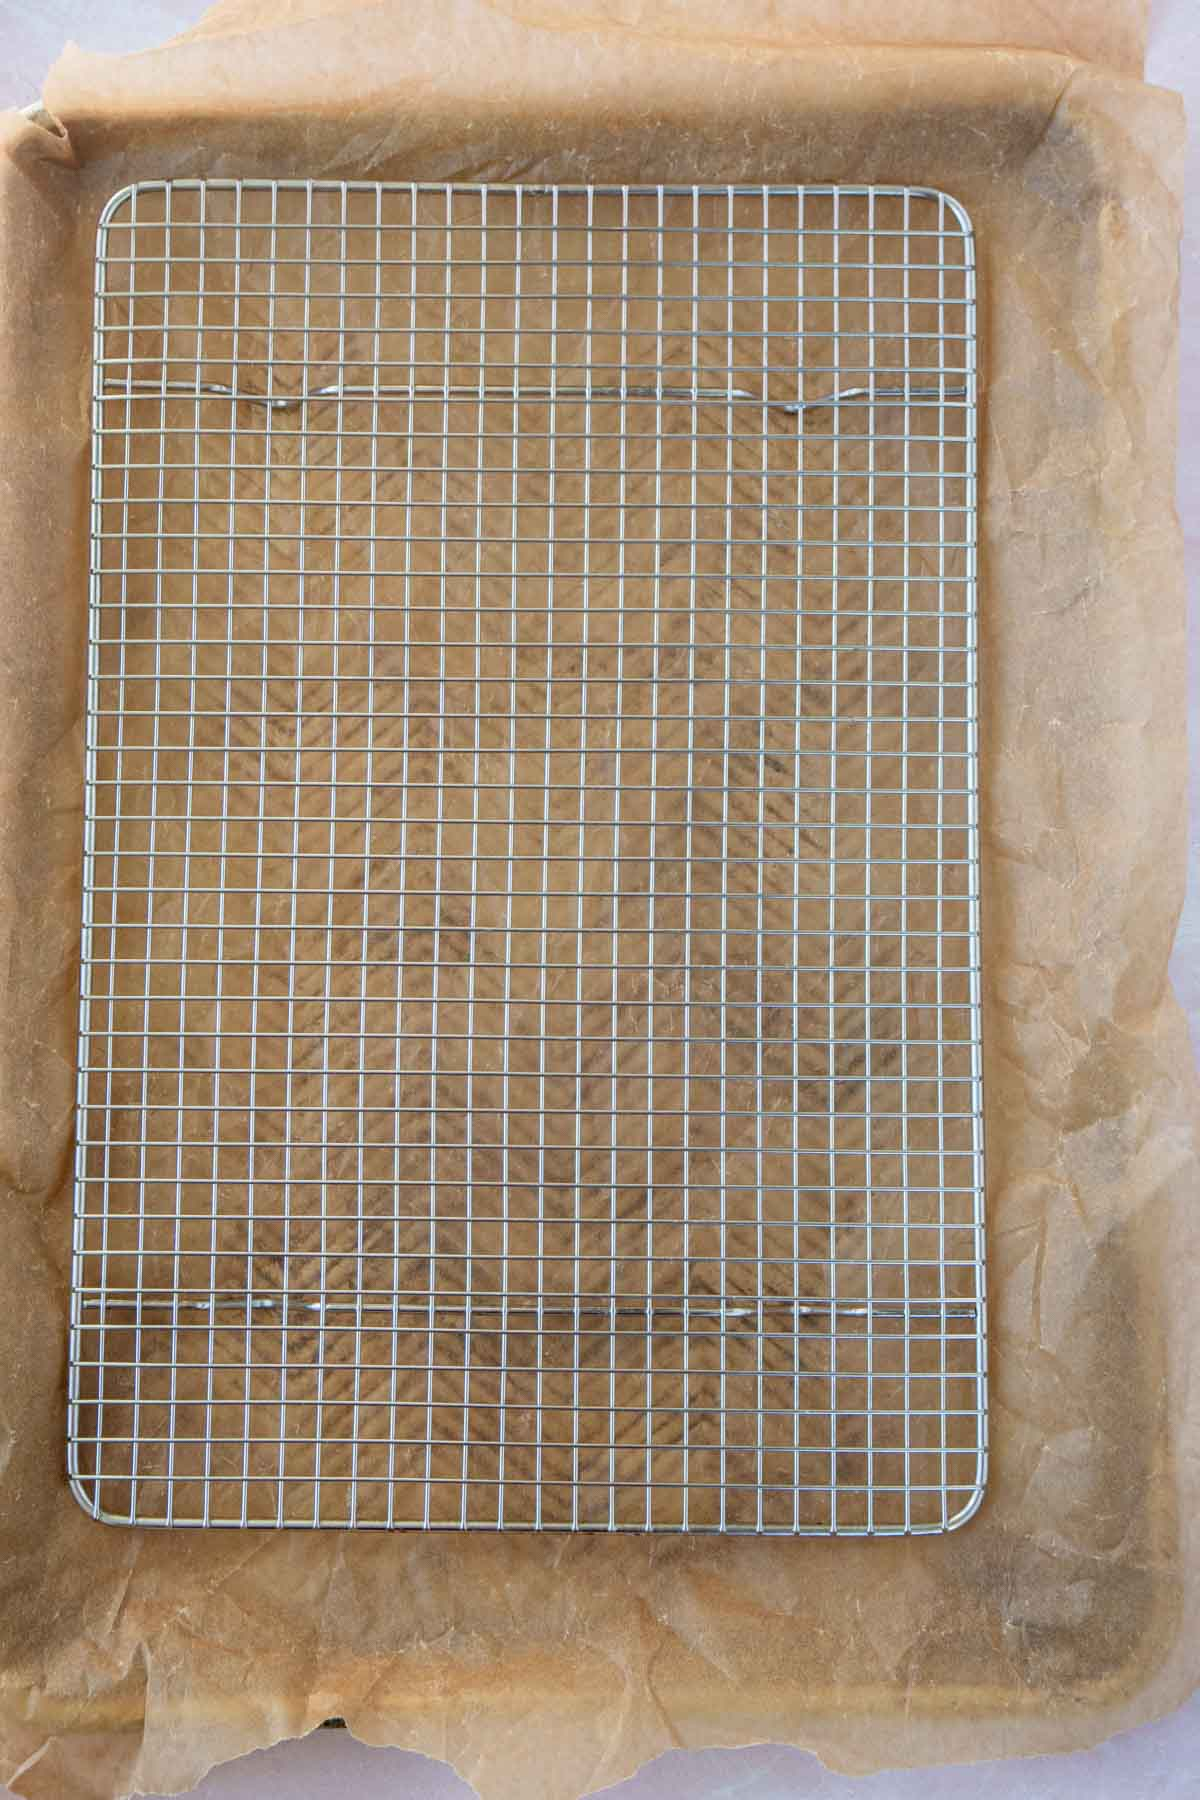 Metal rack on top of parchment paper on a baking sheet